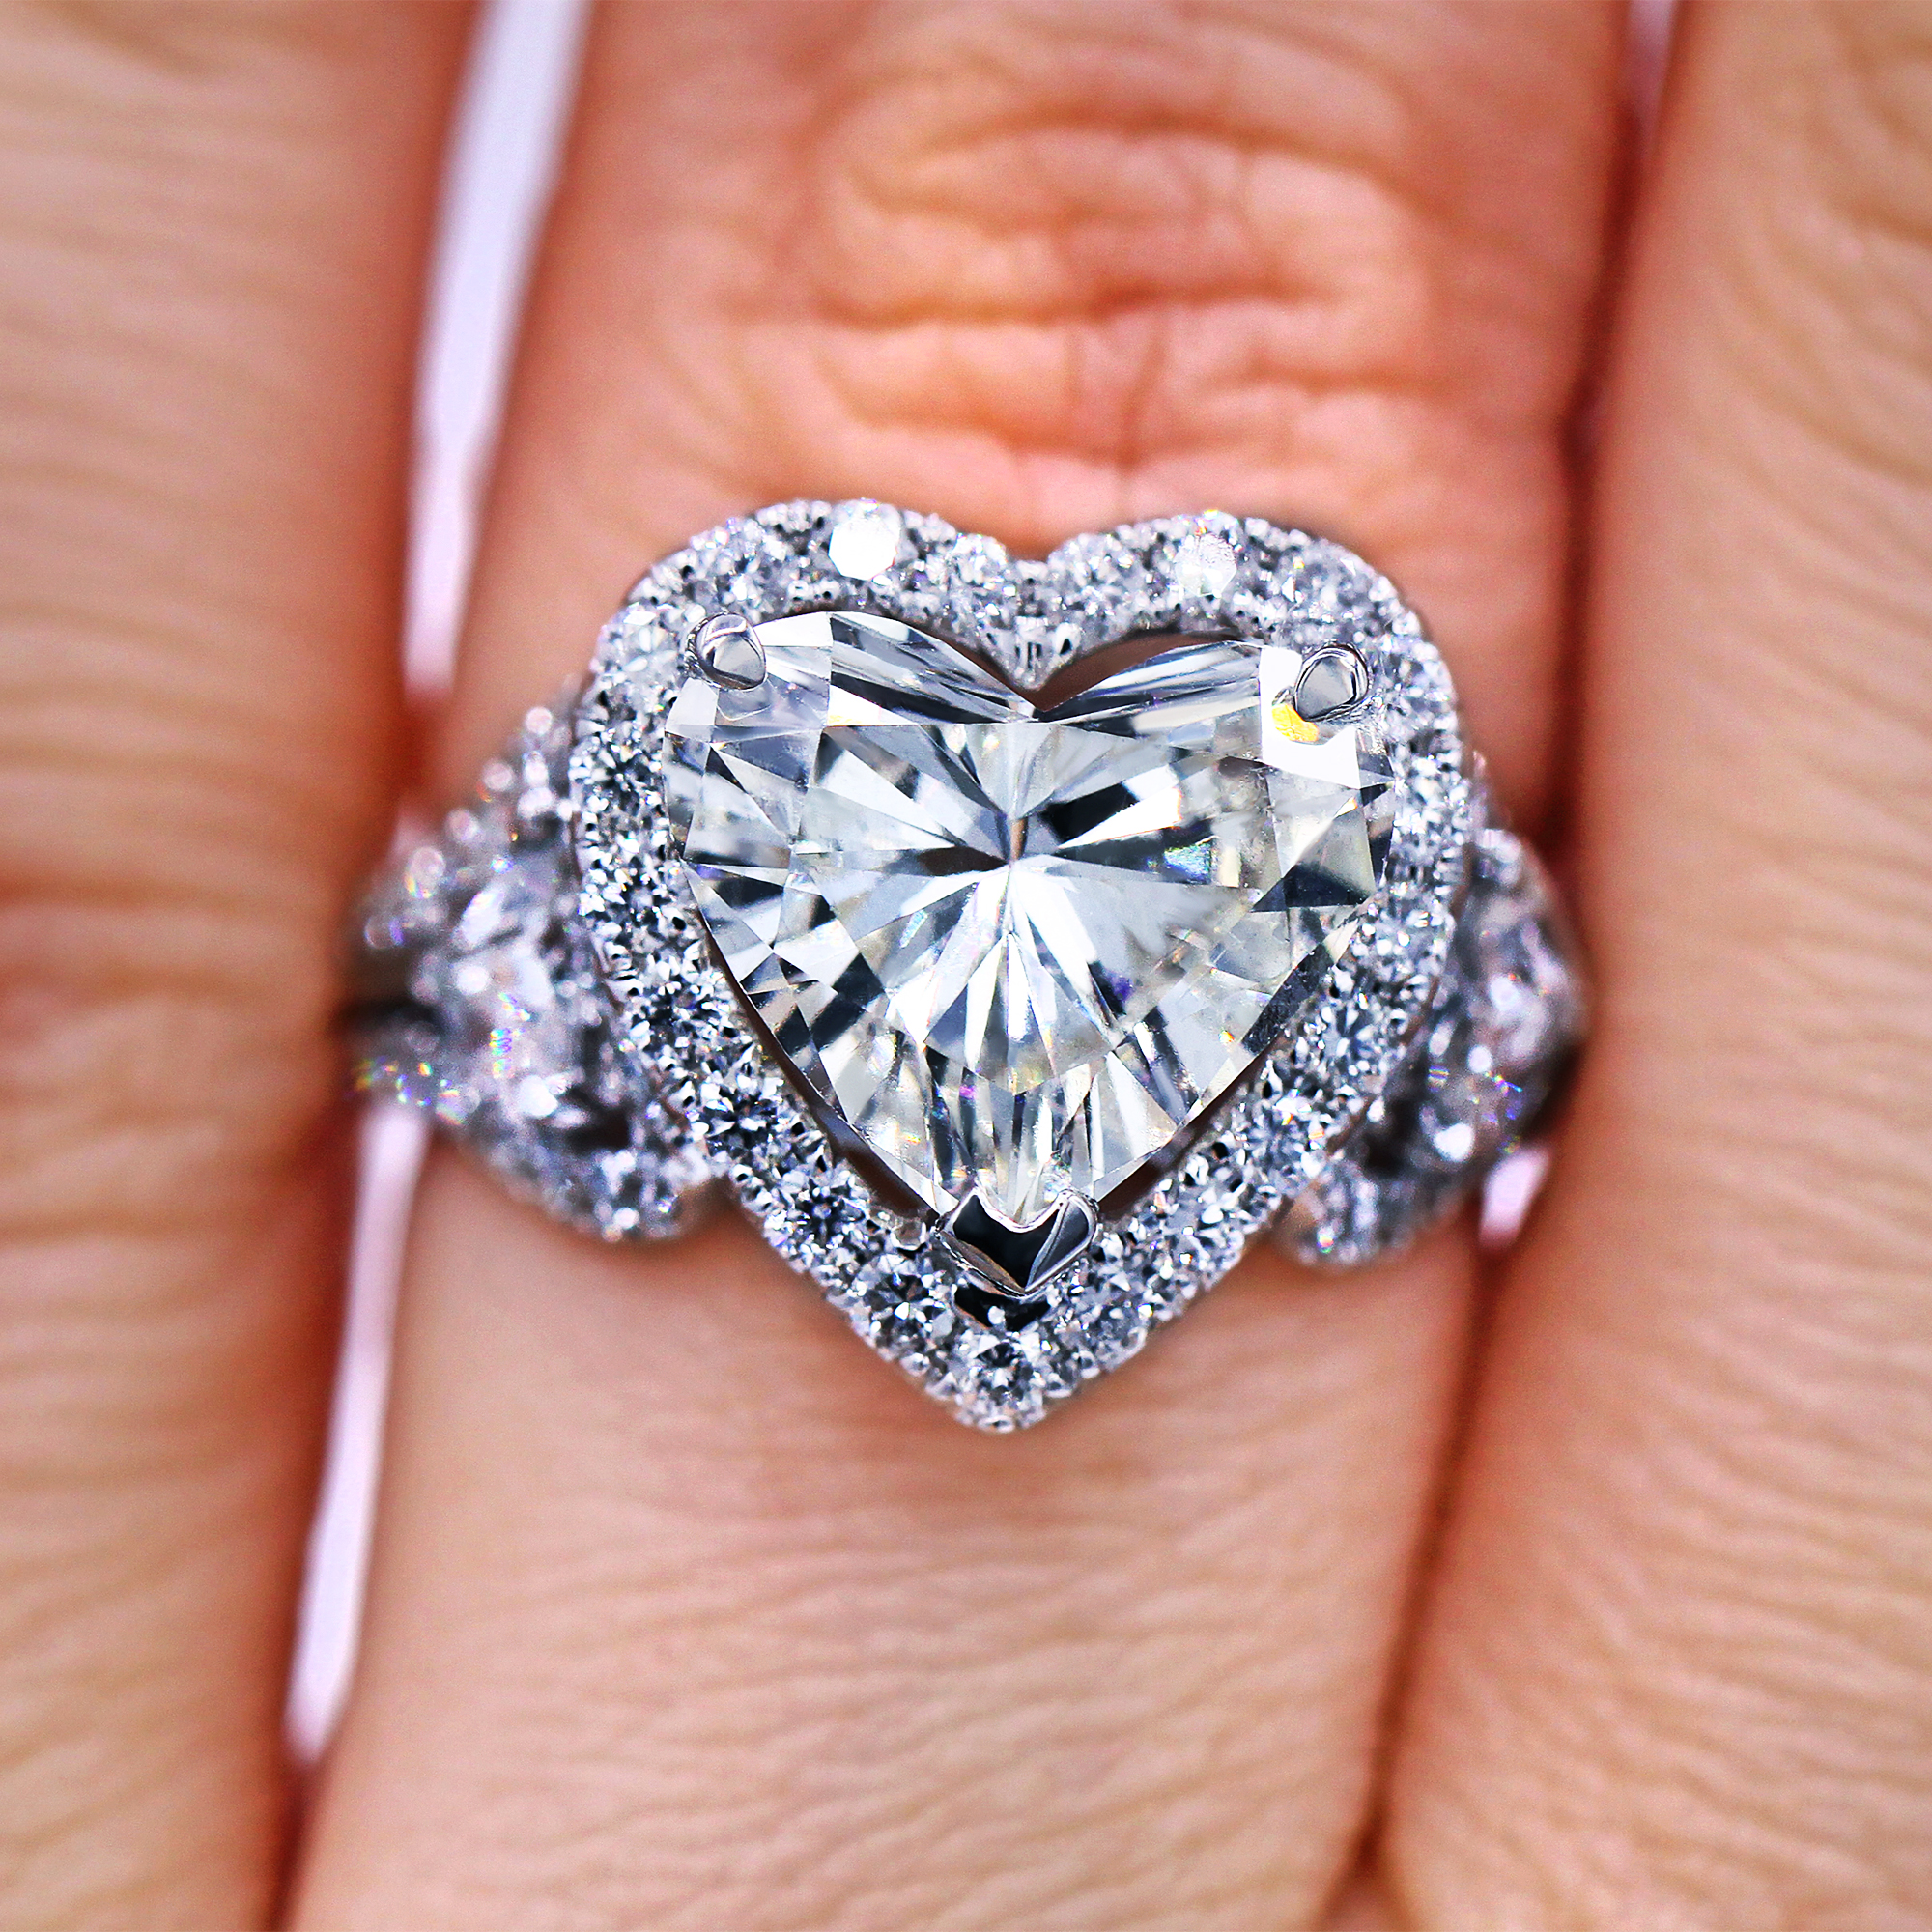 d17508800aee Certified 4.59 TCW heart shaped diamond ring - Luxury Watches ...